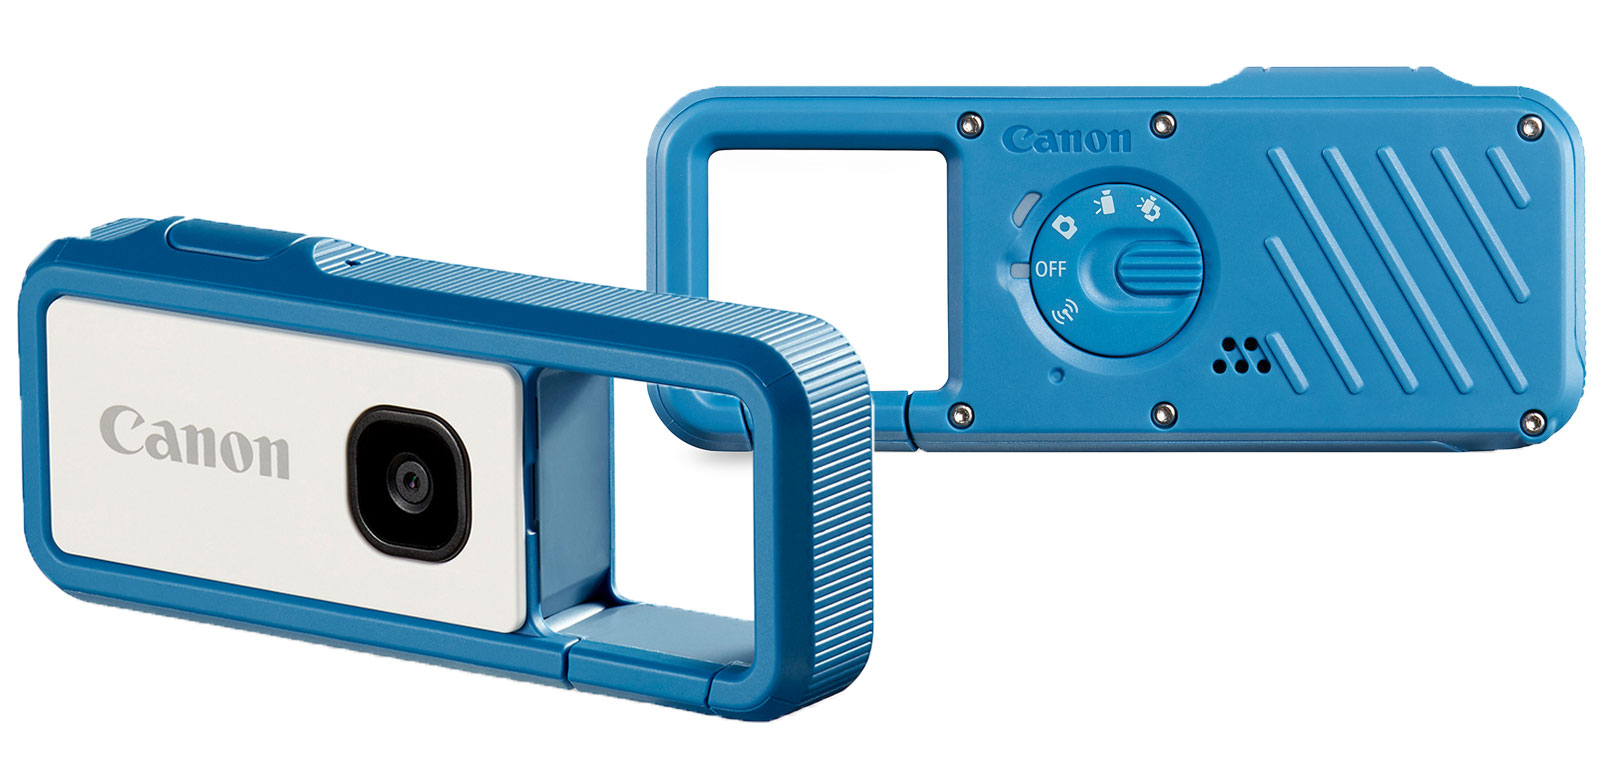 Not a Toy: Canon's Tiny 'Carabiner Camera' Is Built for Adventure